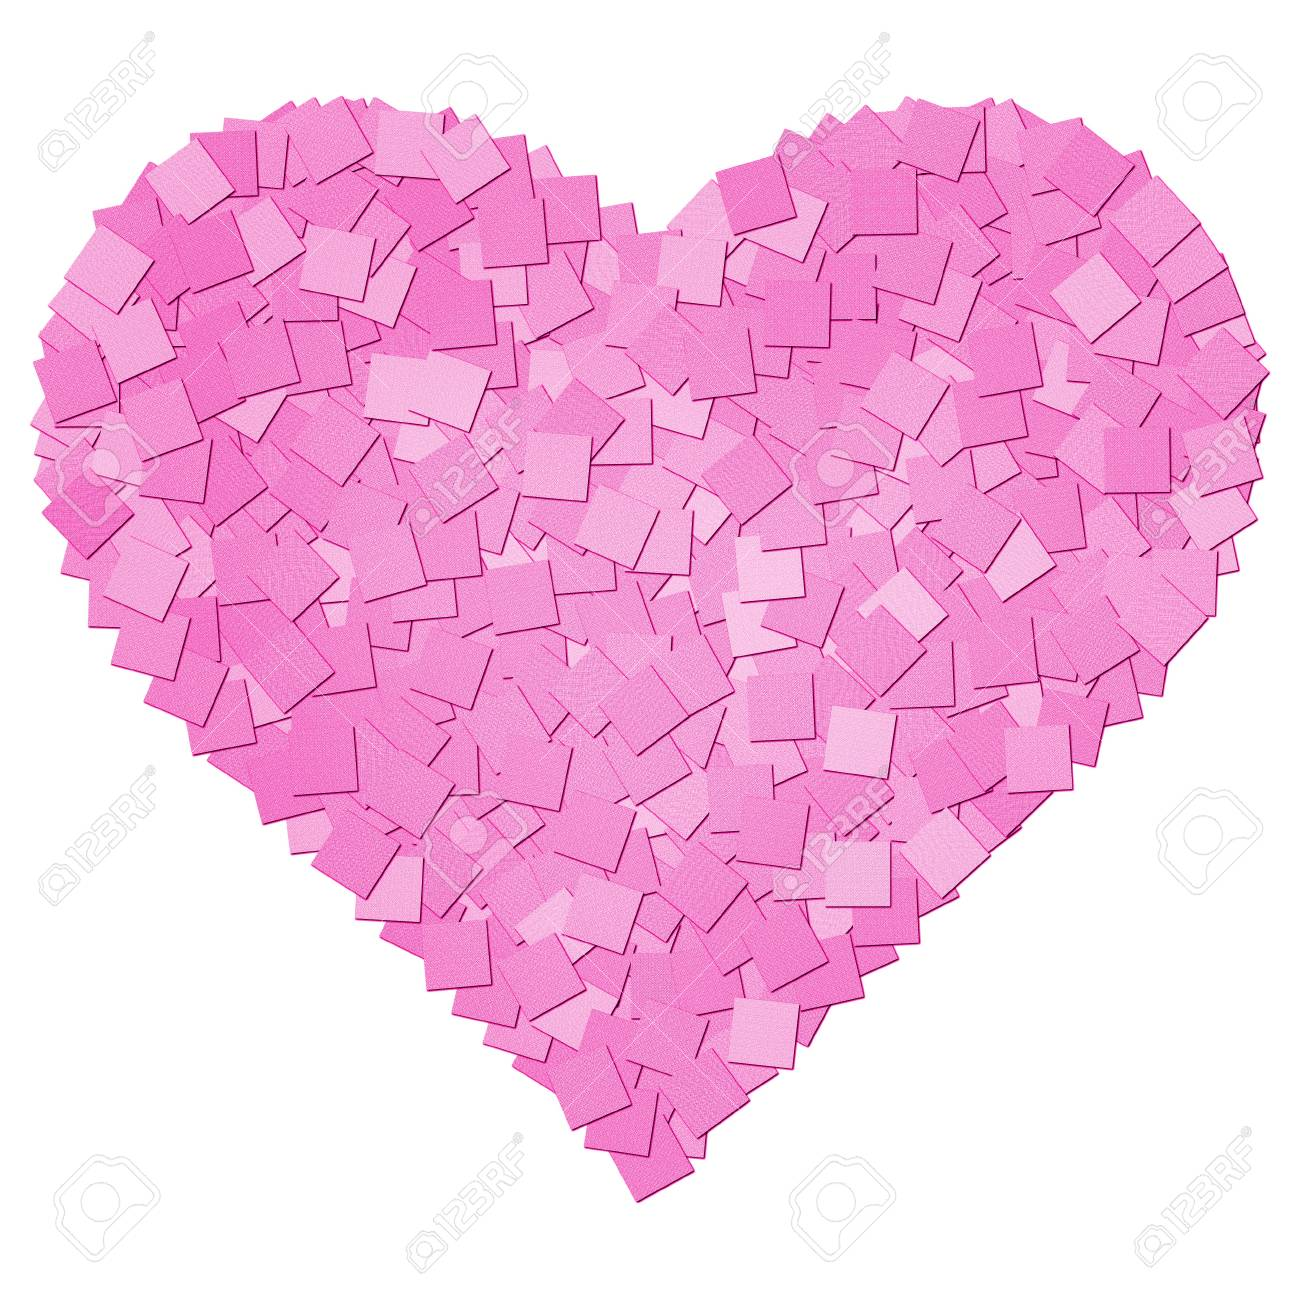 The pink canvas texture heart shape Stock Photo - 13191573